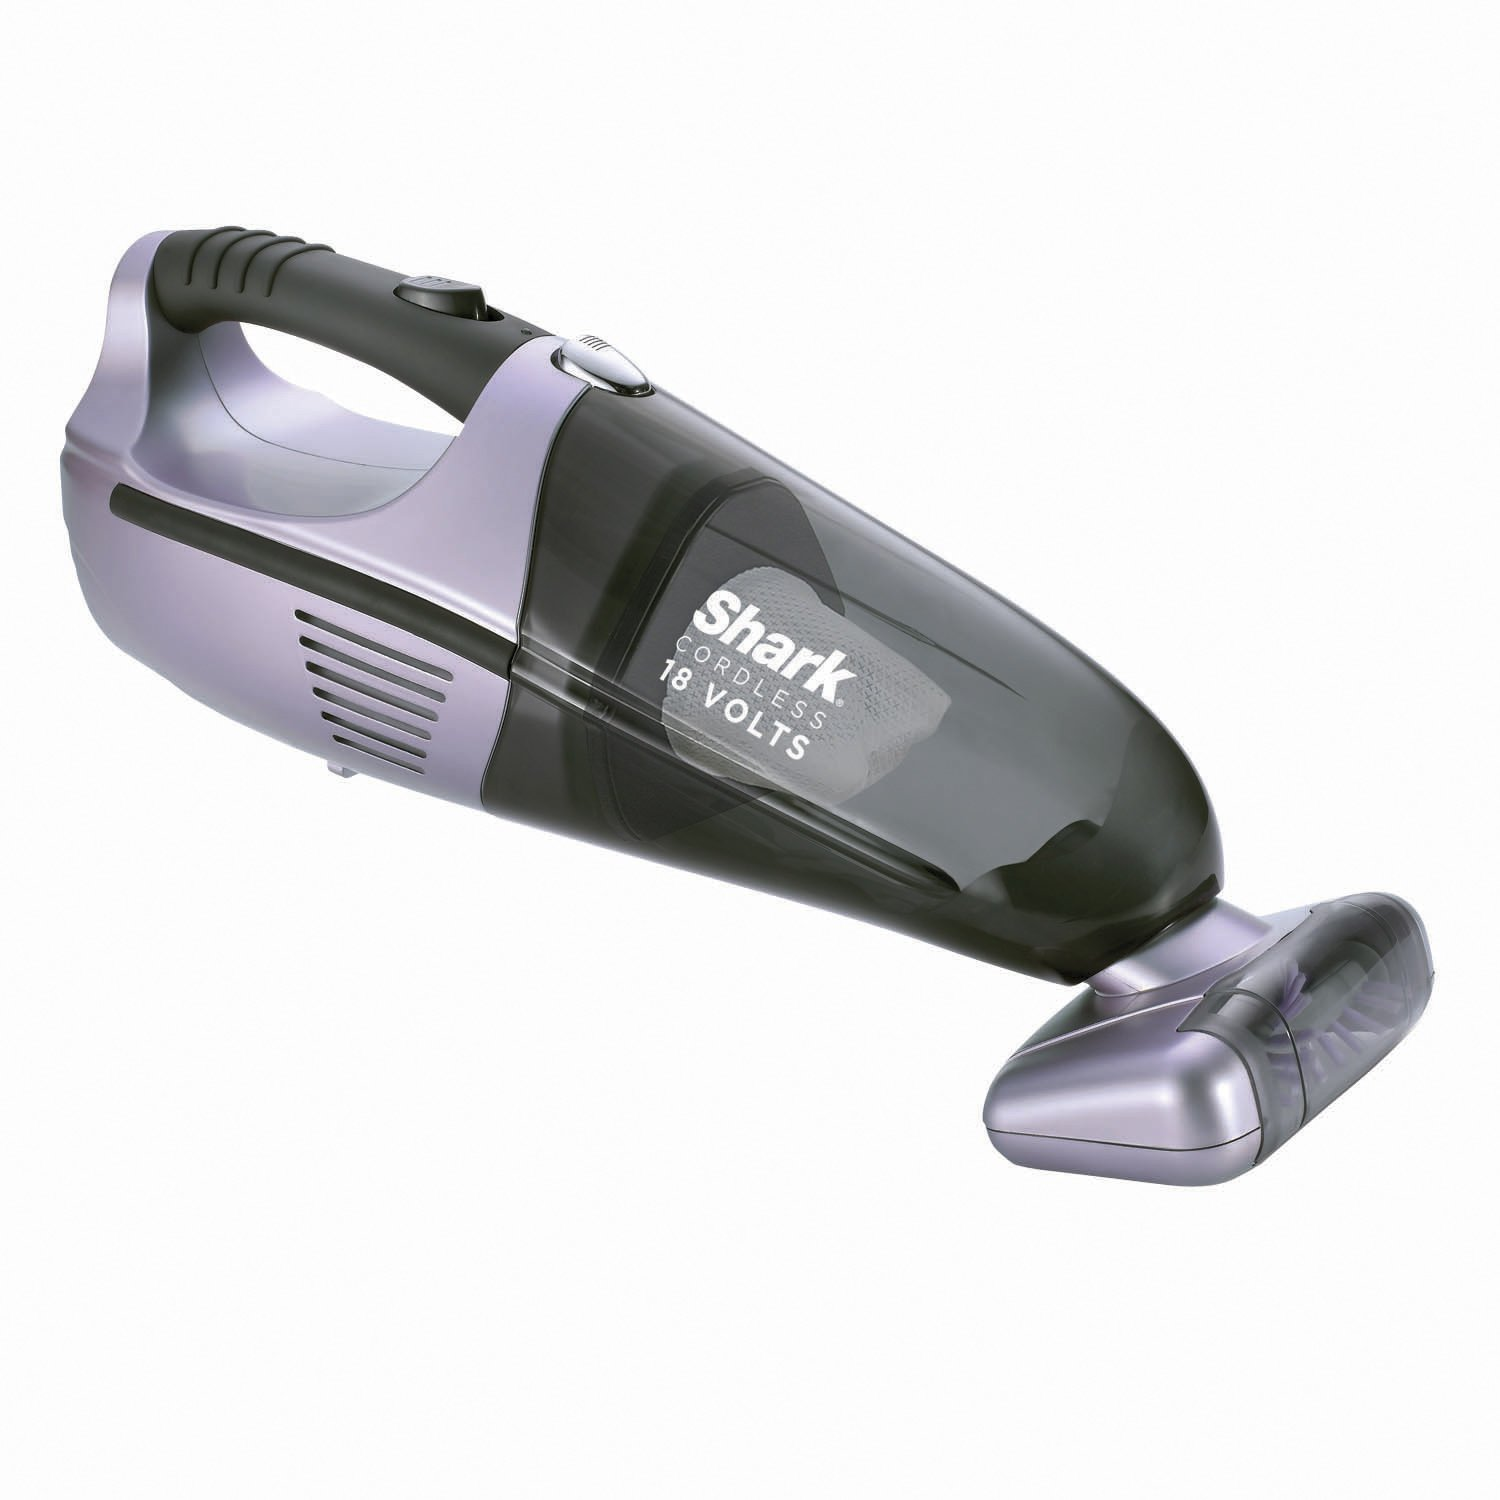 shark pet perfect ii cordless handheld vacuum sv780 - Handheld Vacuum Reviews